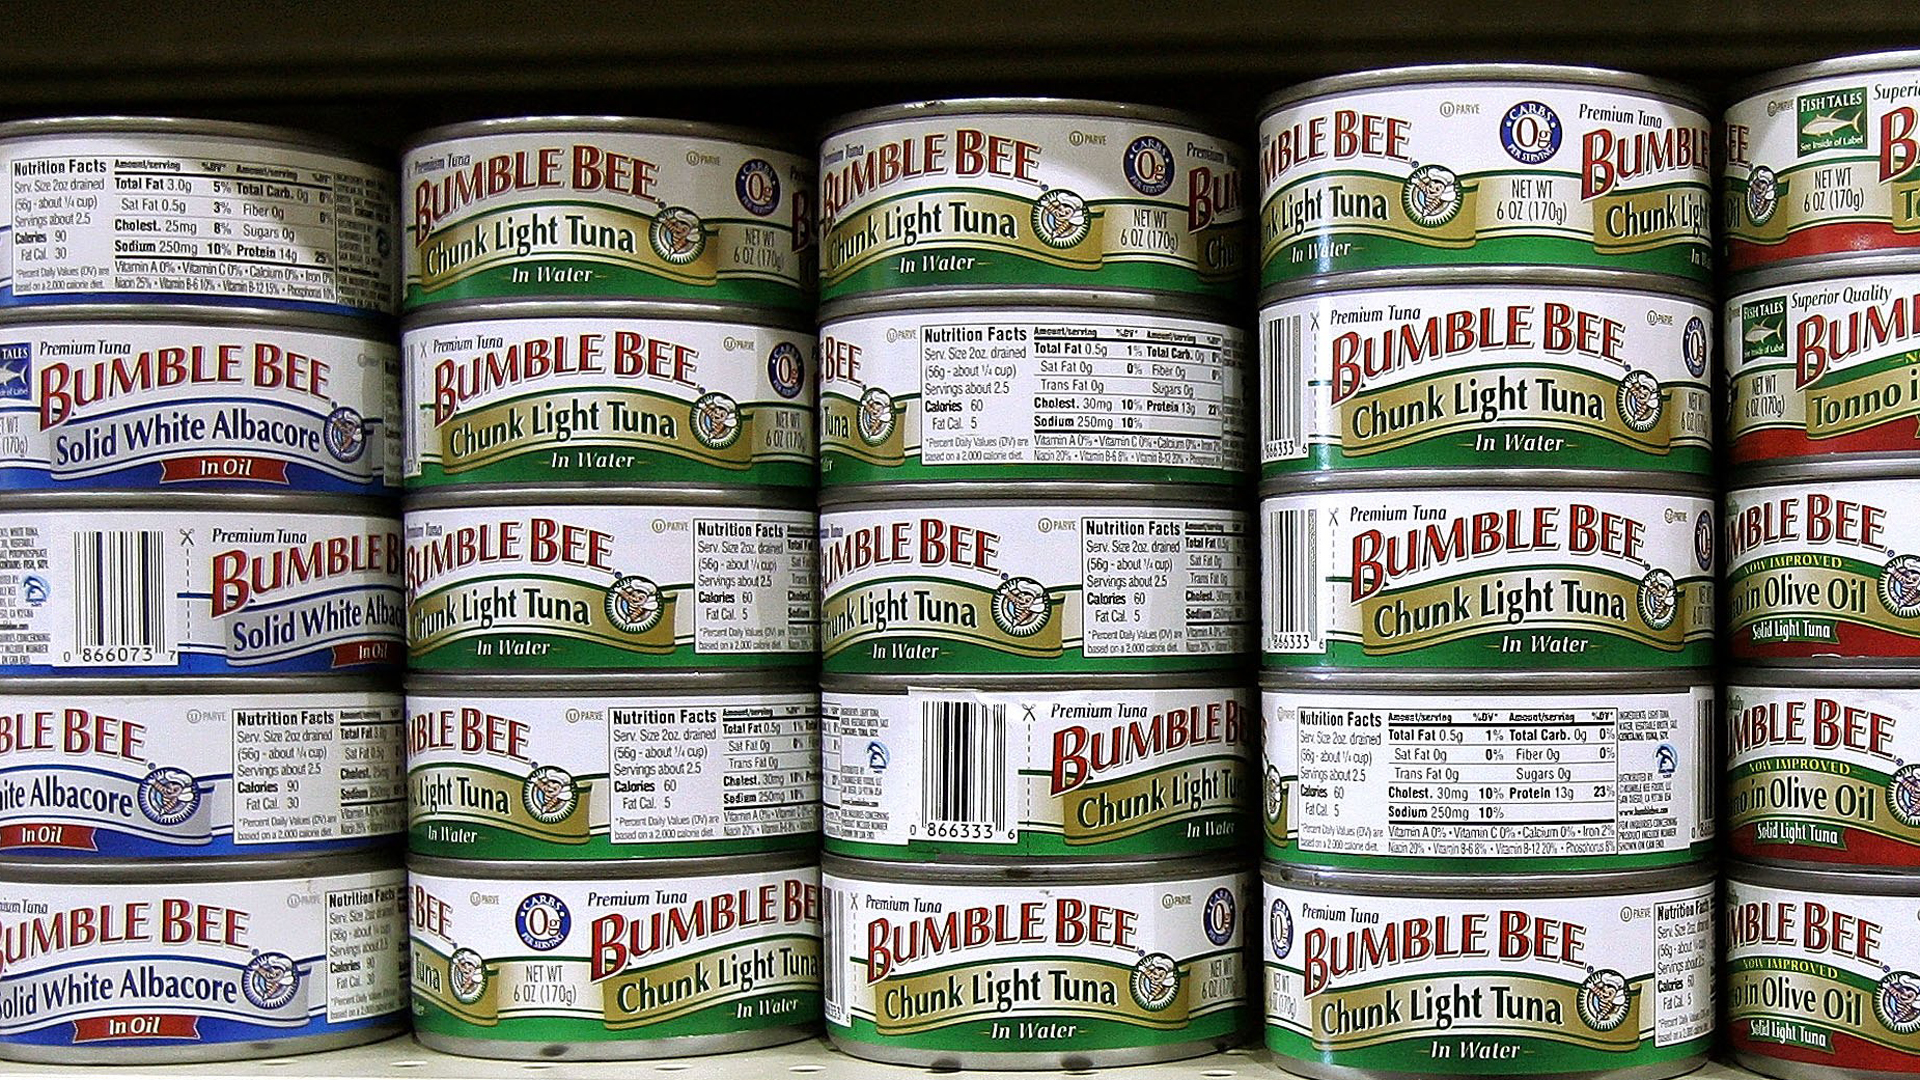 Cans of Bumble Bee tuna are displayed in a grocery store on Jan. 27, 2006, in Des Plaines, Illinois. (Credit: Tim Boyle/Getty Images)